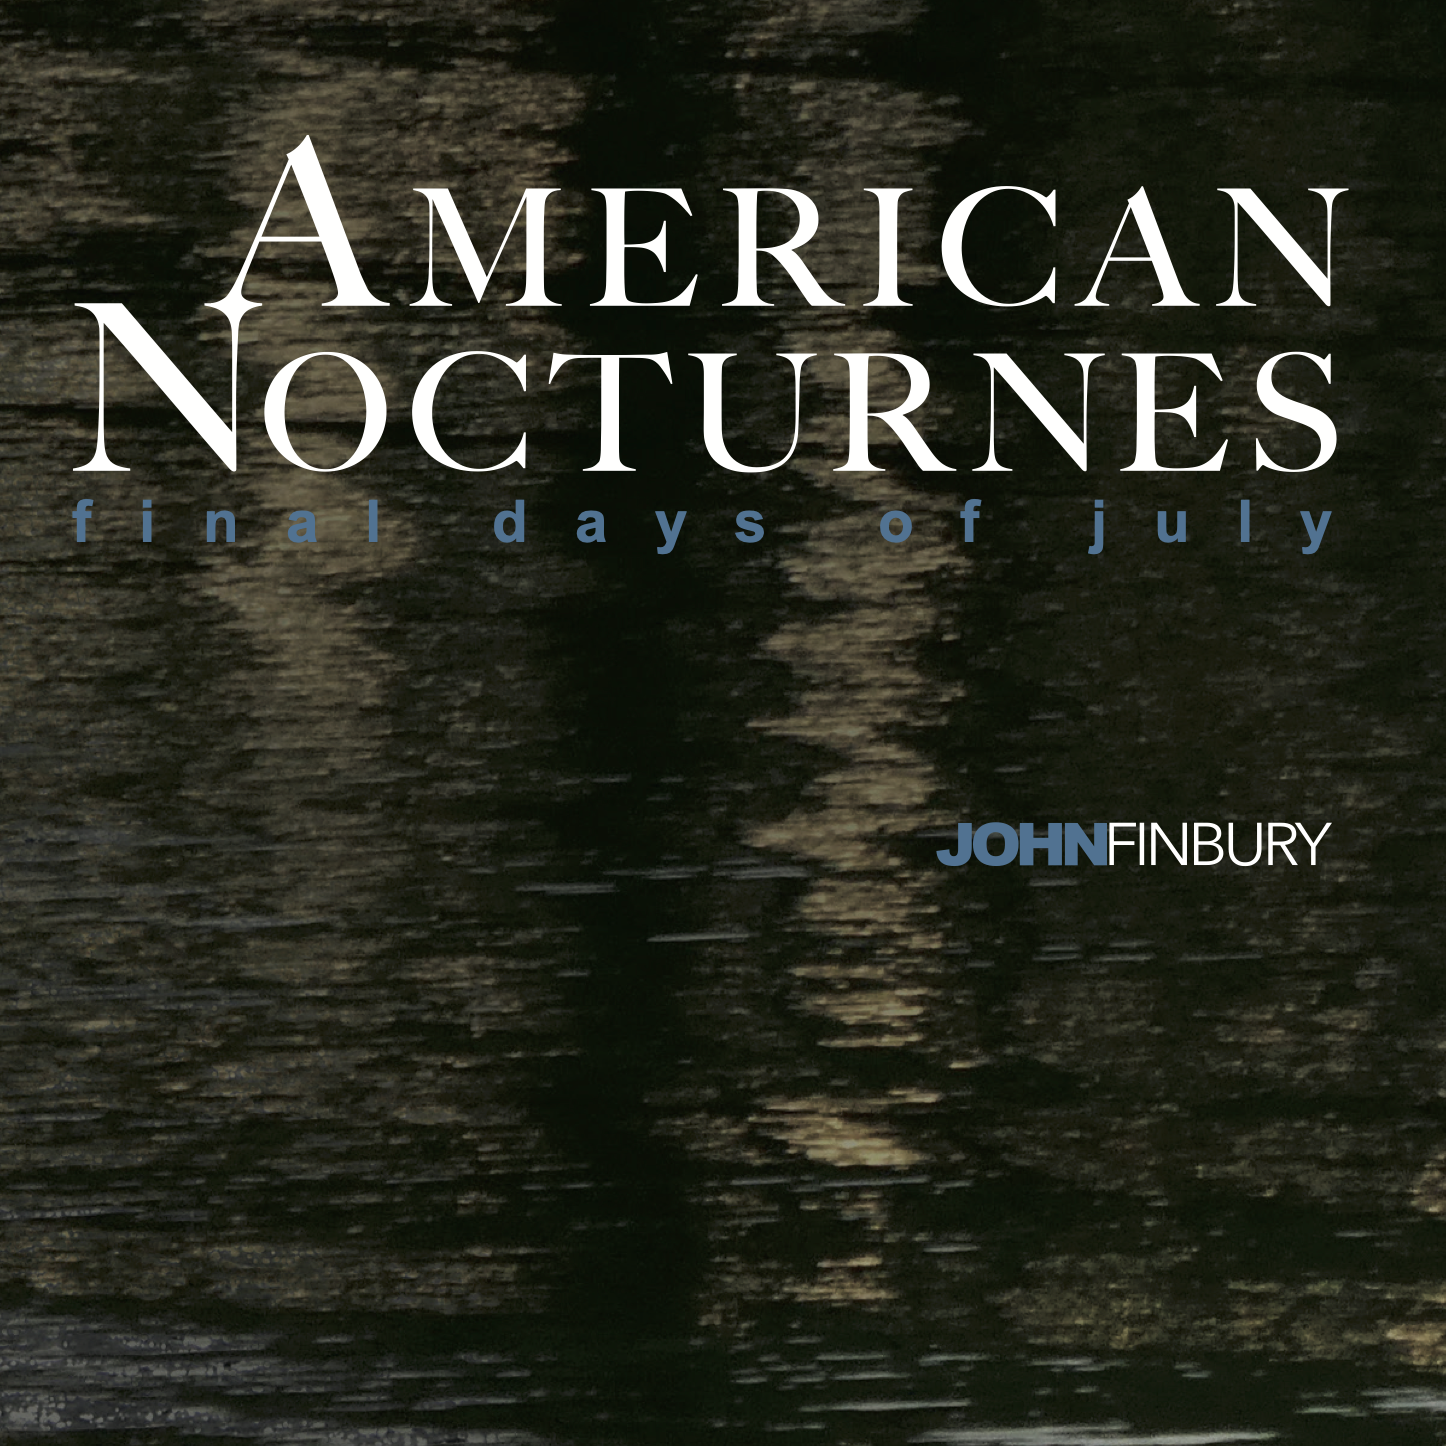 American Nocturnes Album Cover Photo John Finbury